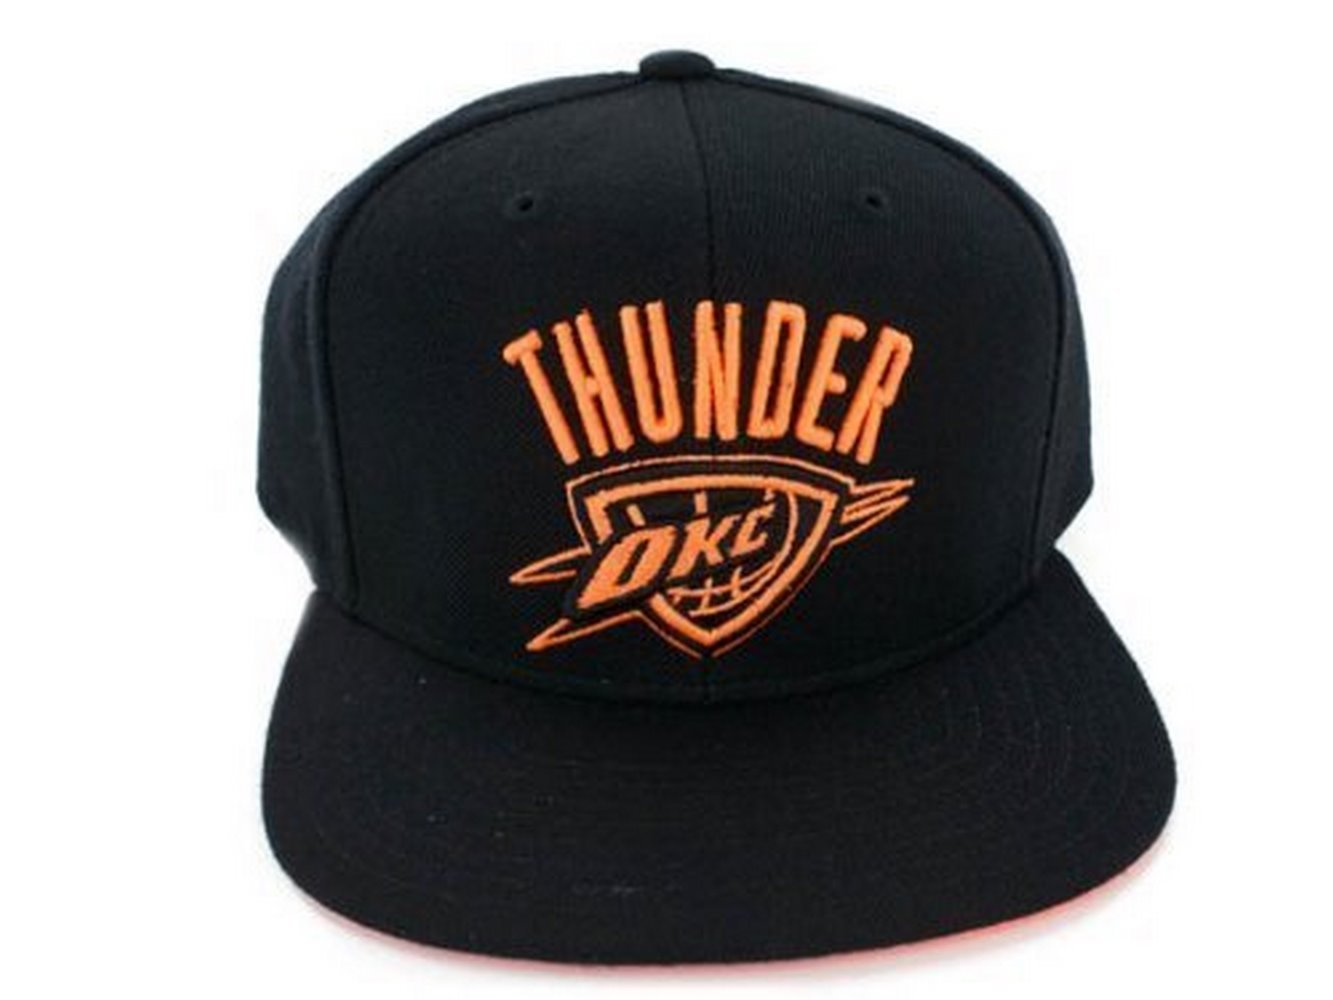 hot sale online 0d411 3041b Get Quotations · NBA Licensed Black and Neon Solid Snapback Cap Hat (OKC  Thunder)